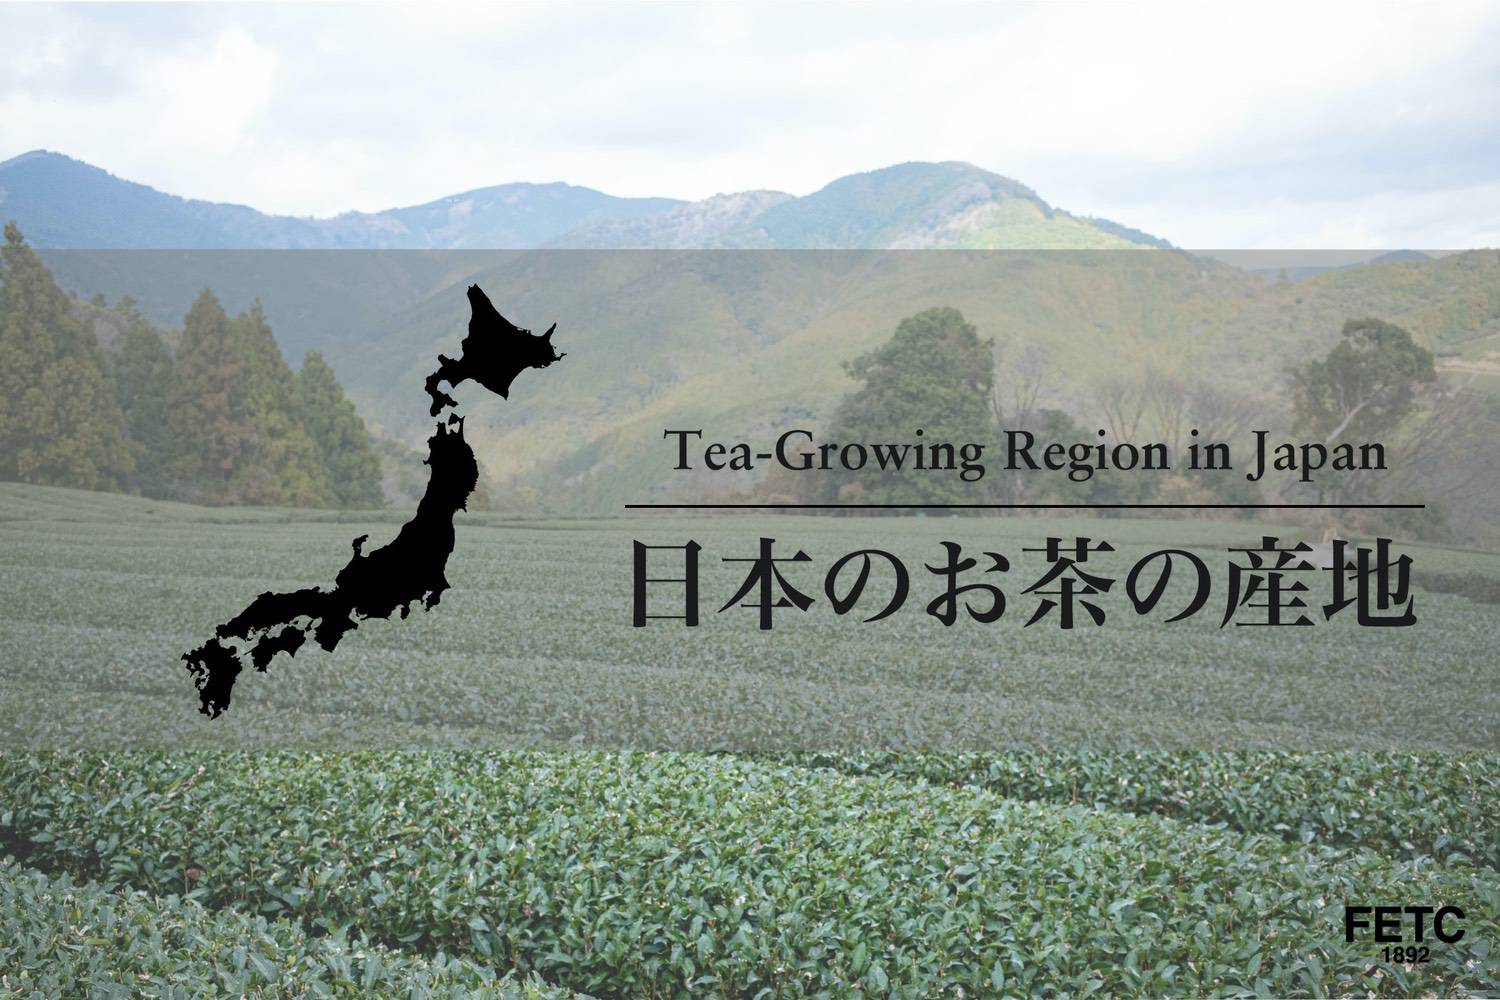 Tea-Growing Region in Japan